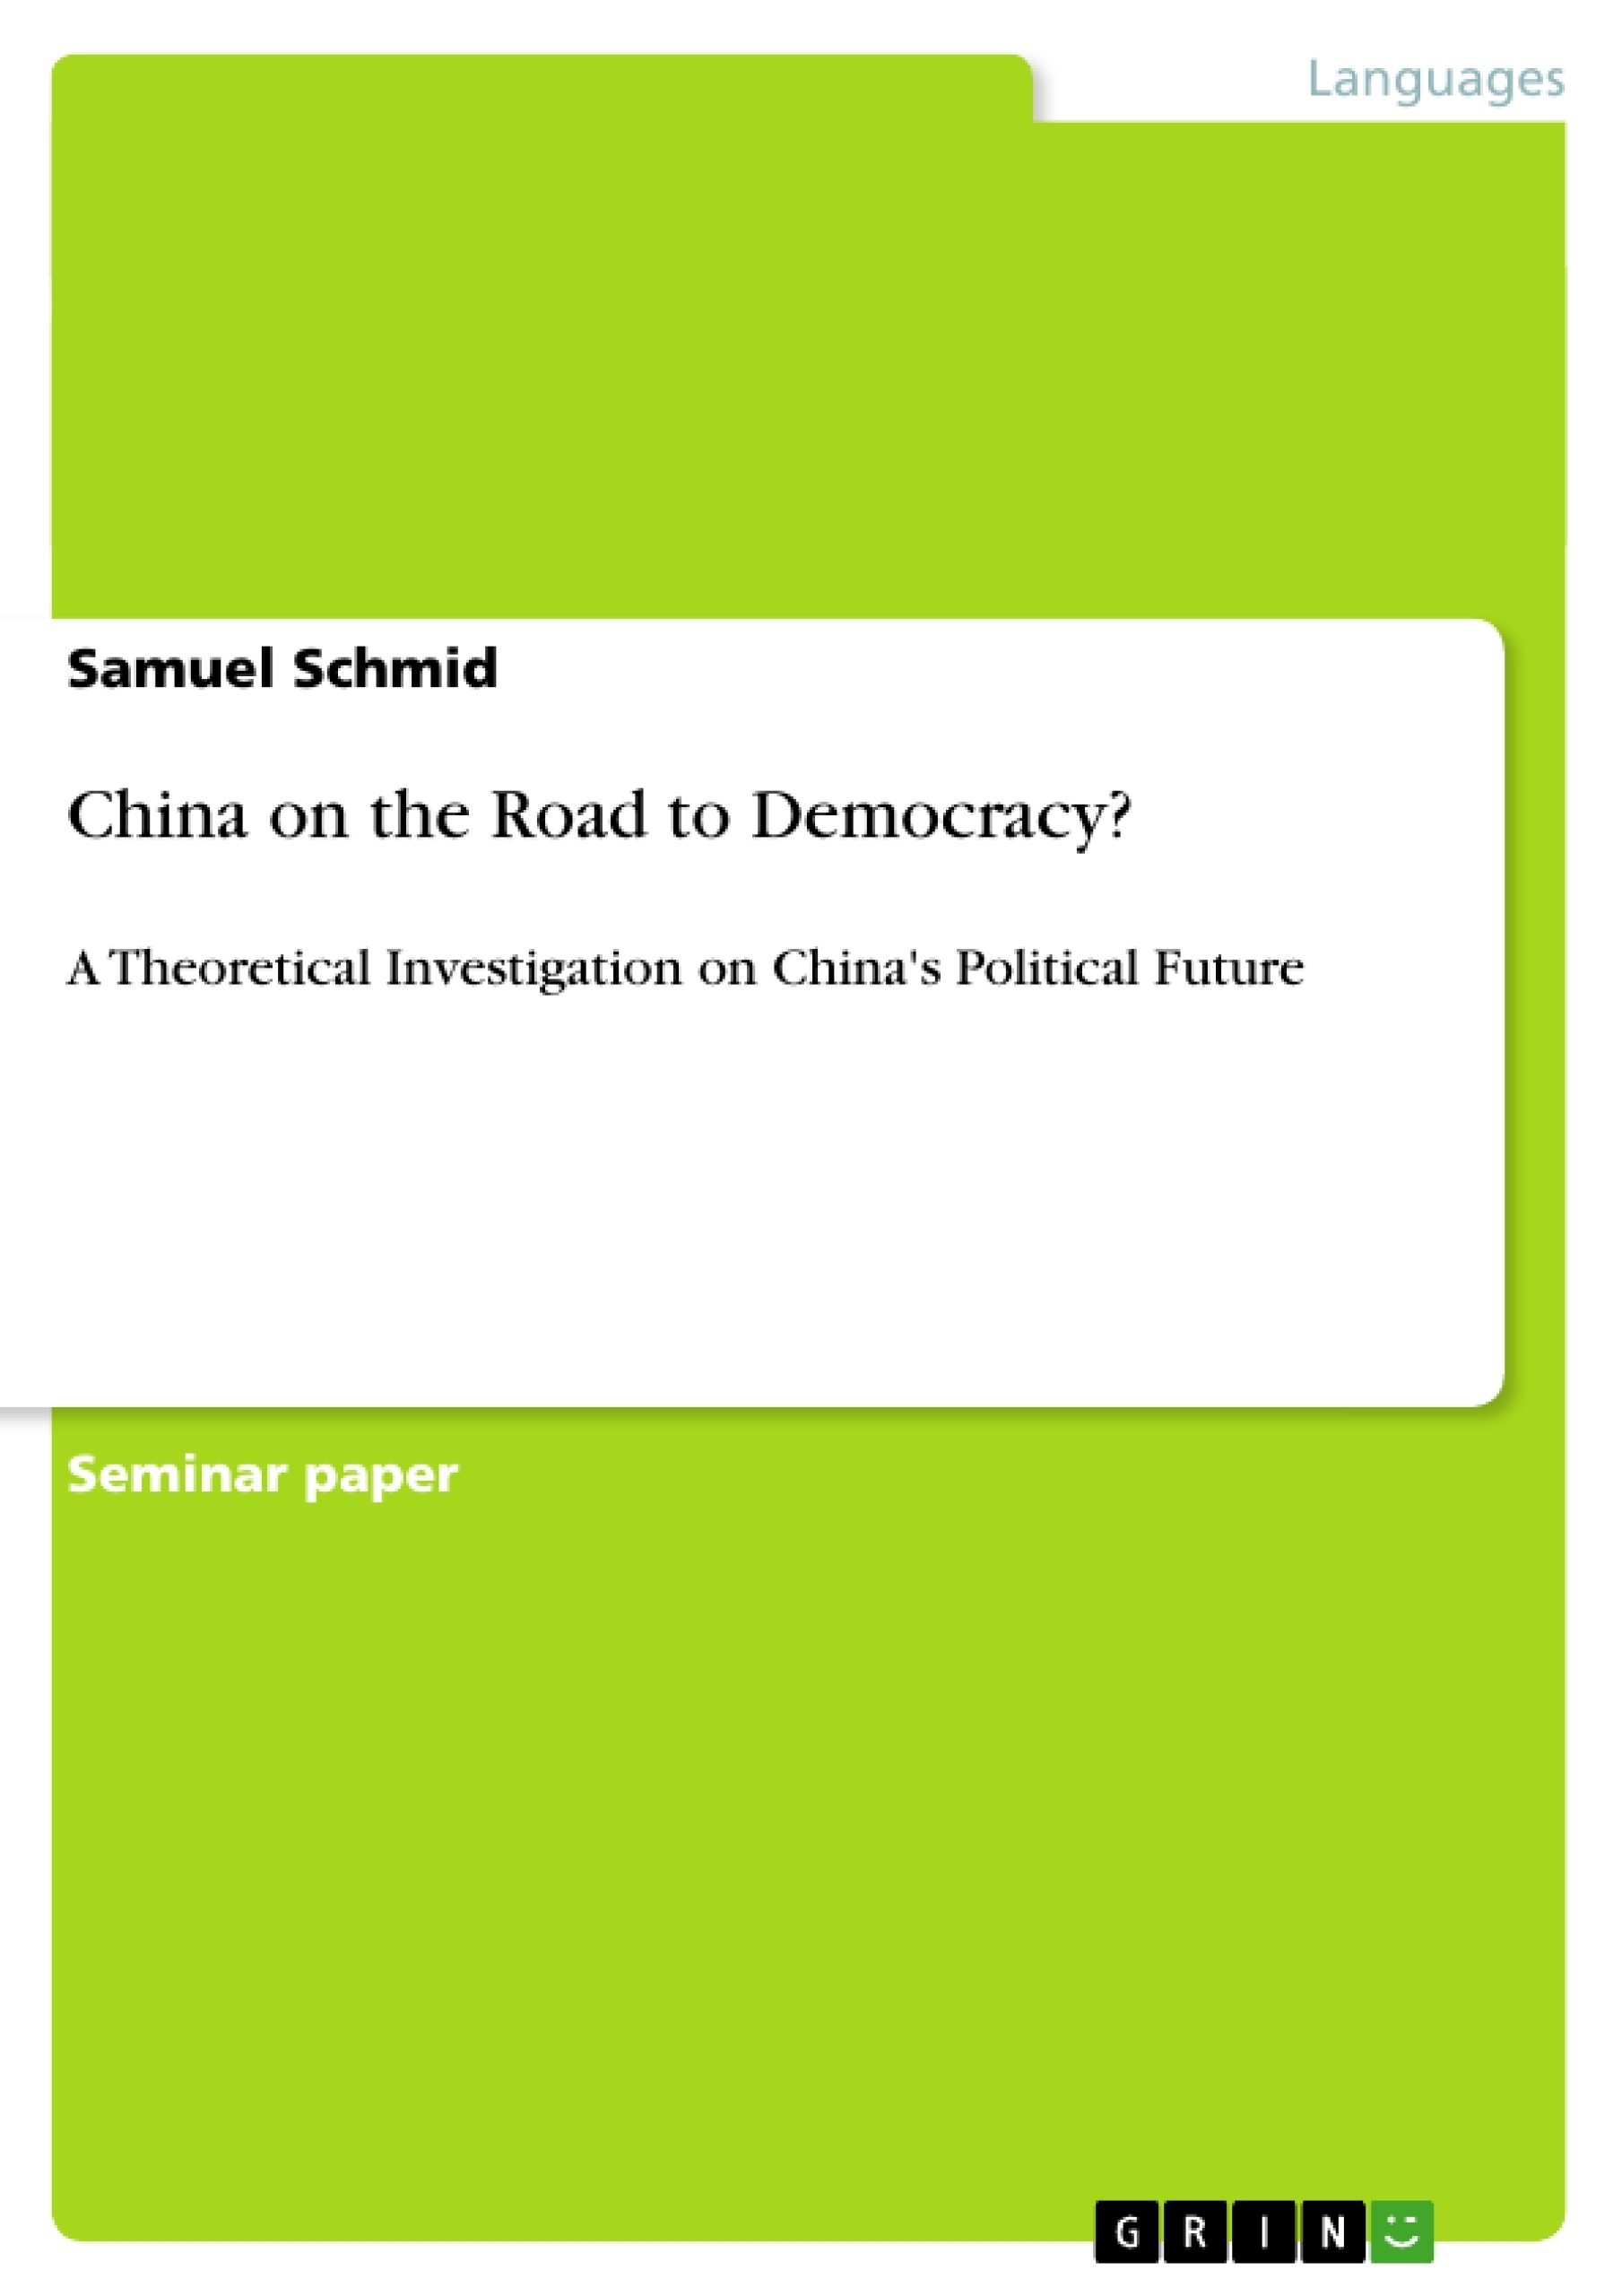 Title: China on the Road to Democracy?